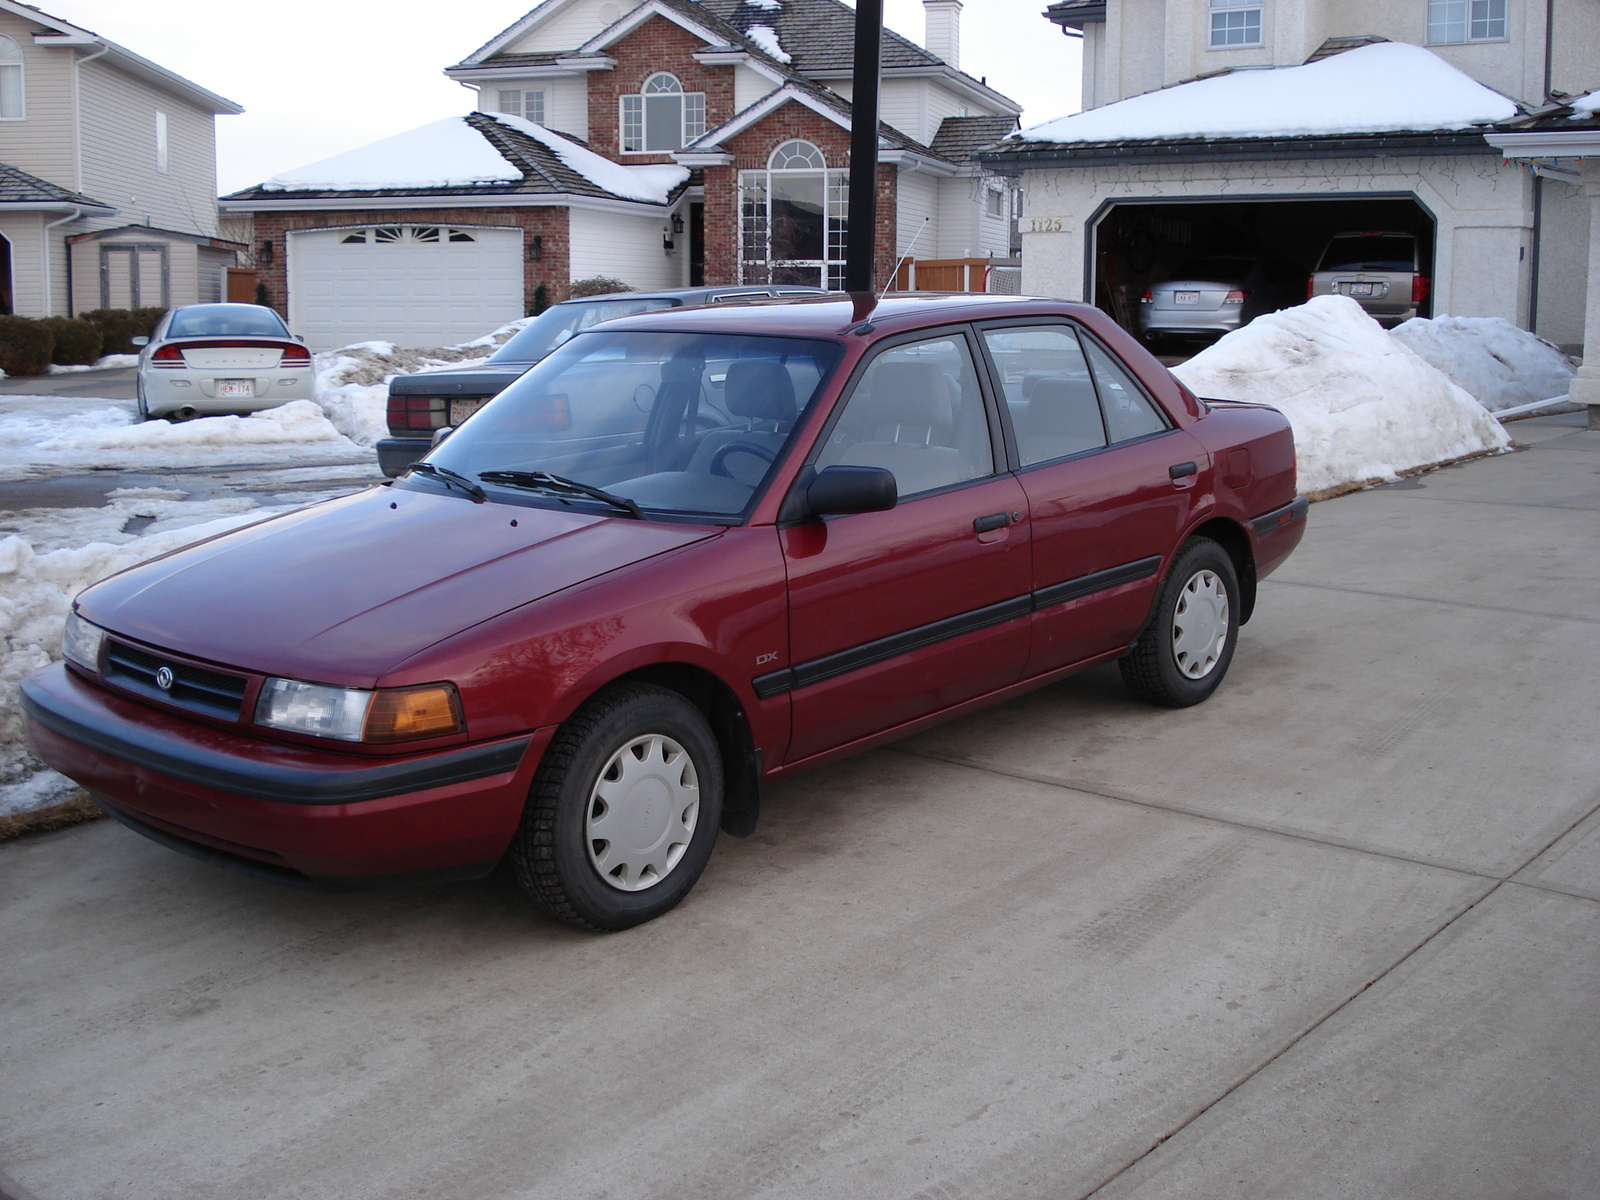 1992 Mazda Protege Red | 200  Interior and Exterior Images